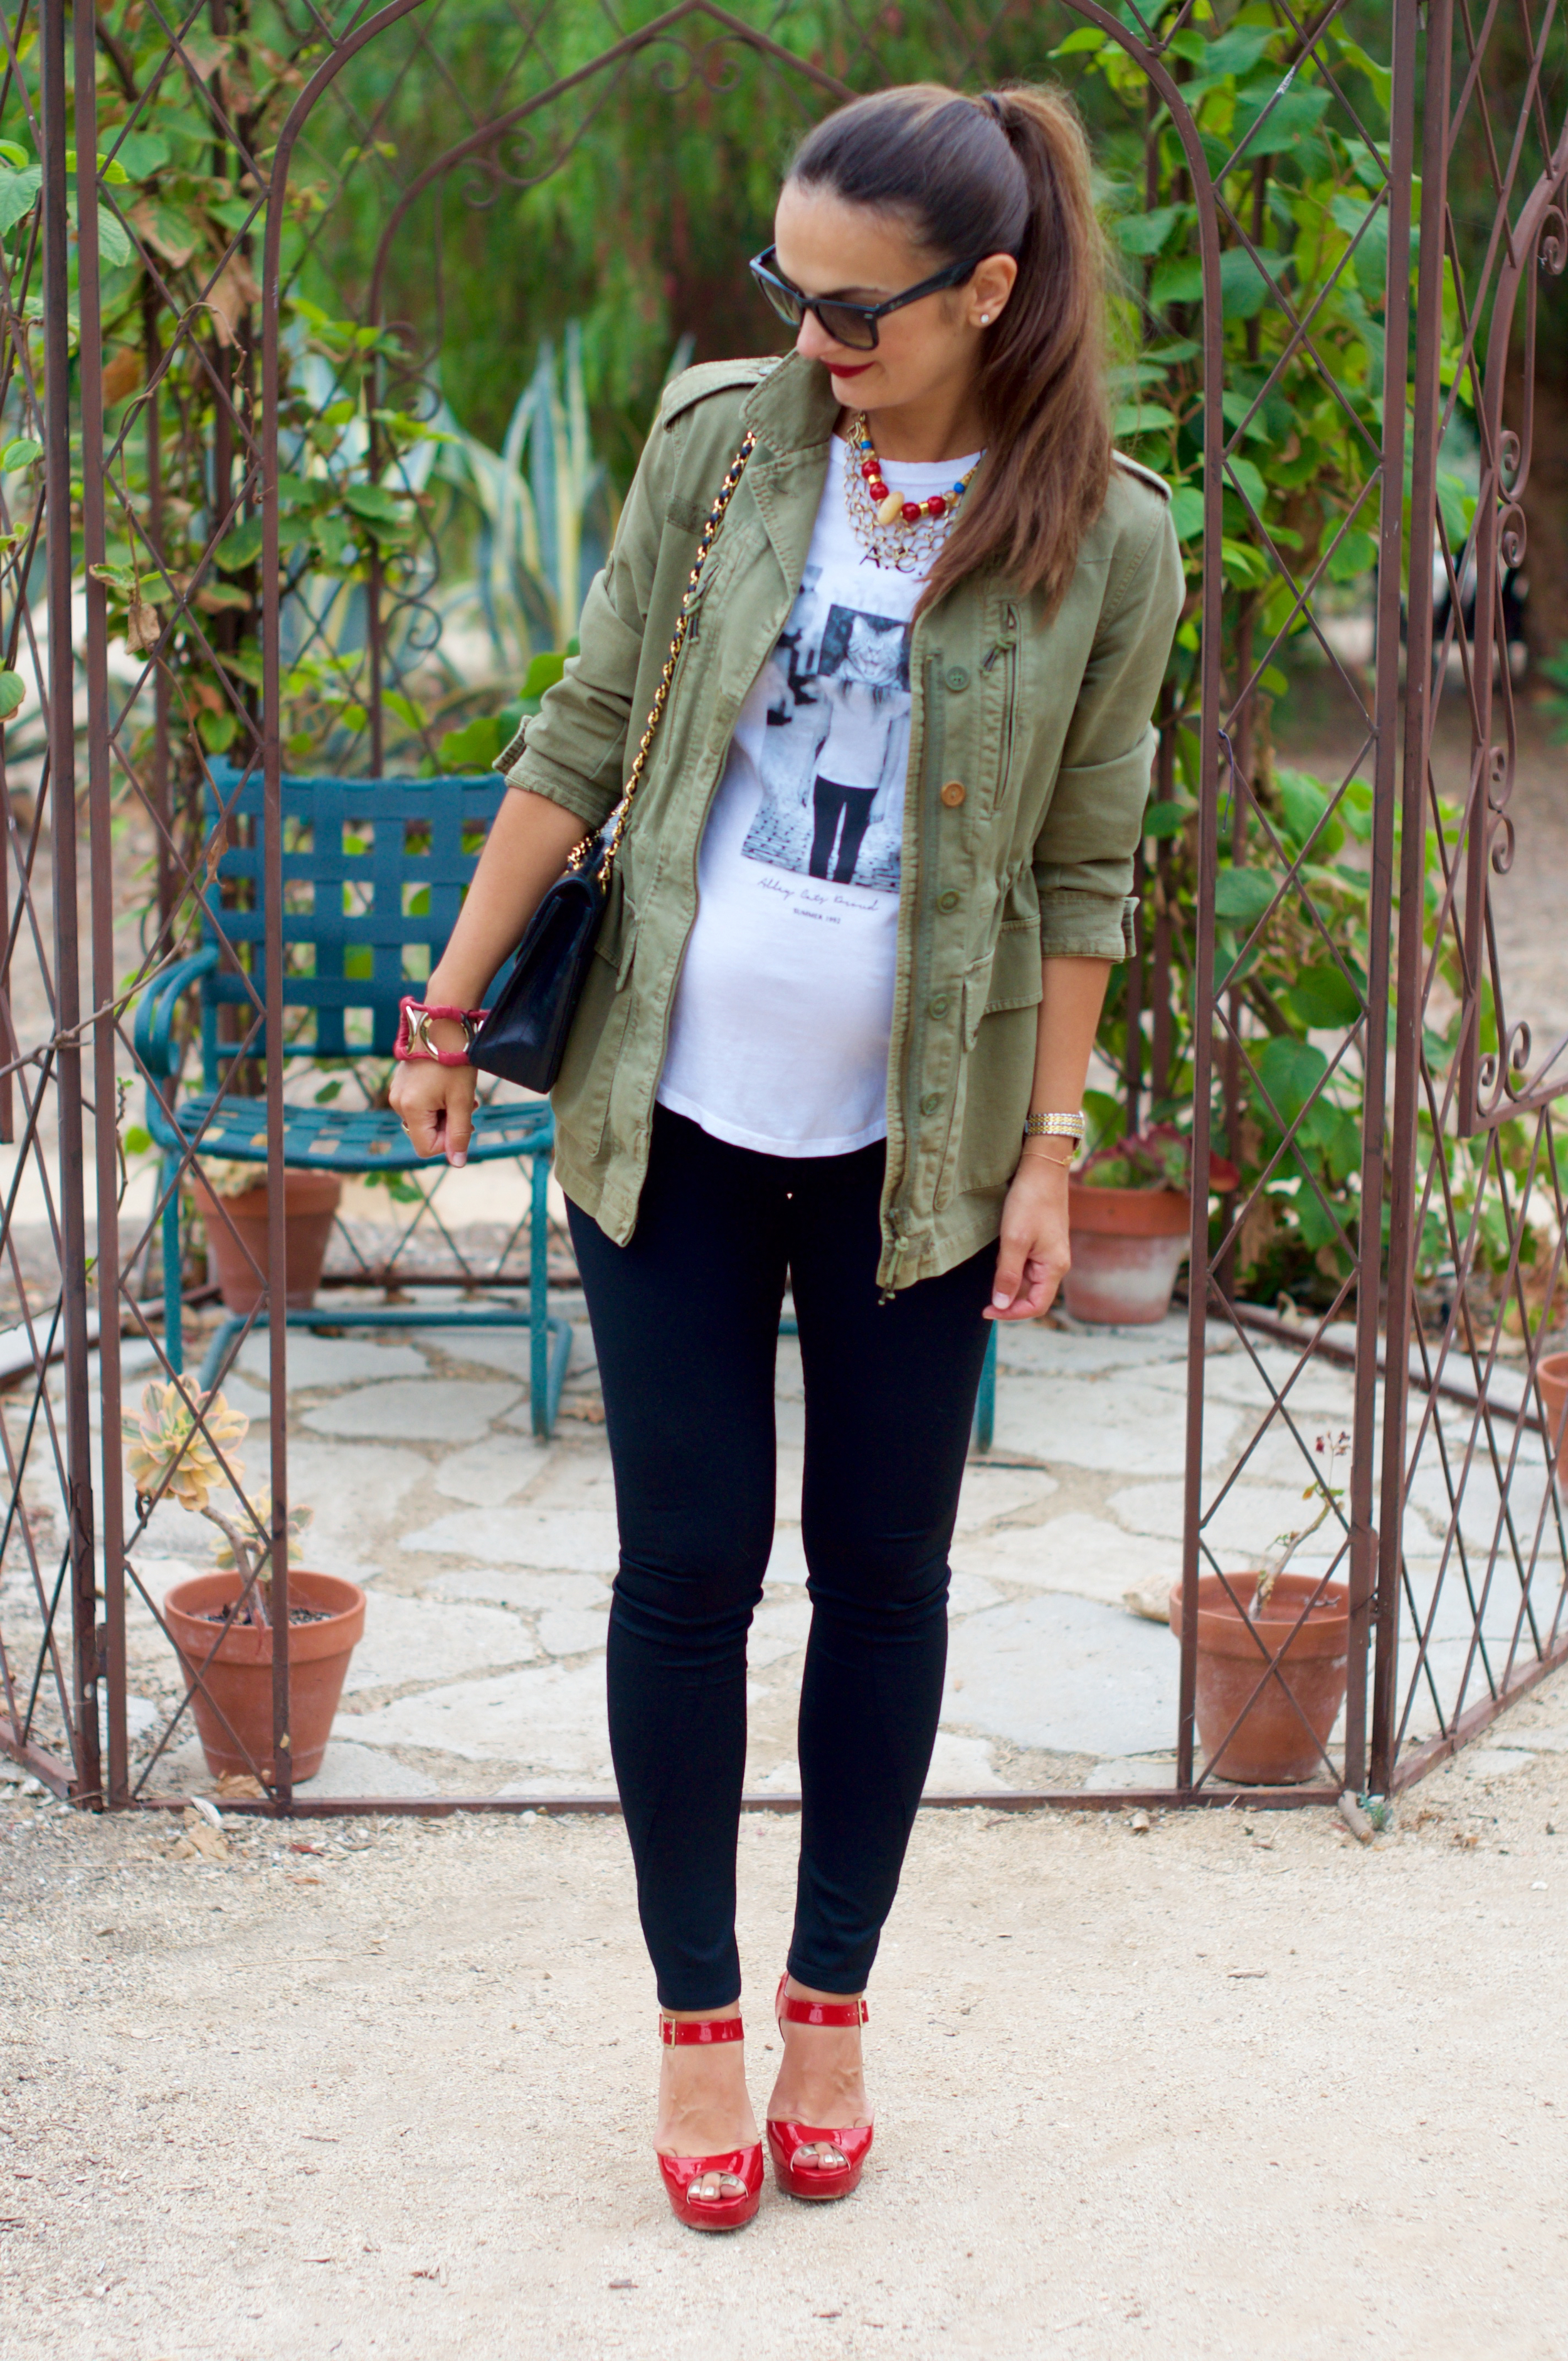 How To Wear Your Regular Clothes While Pregnant